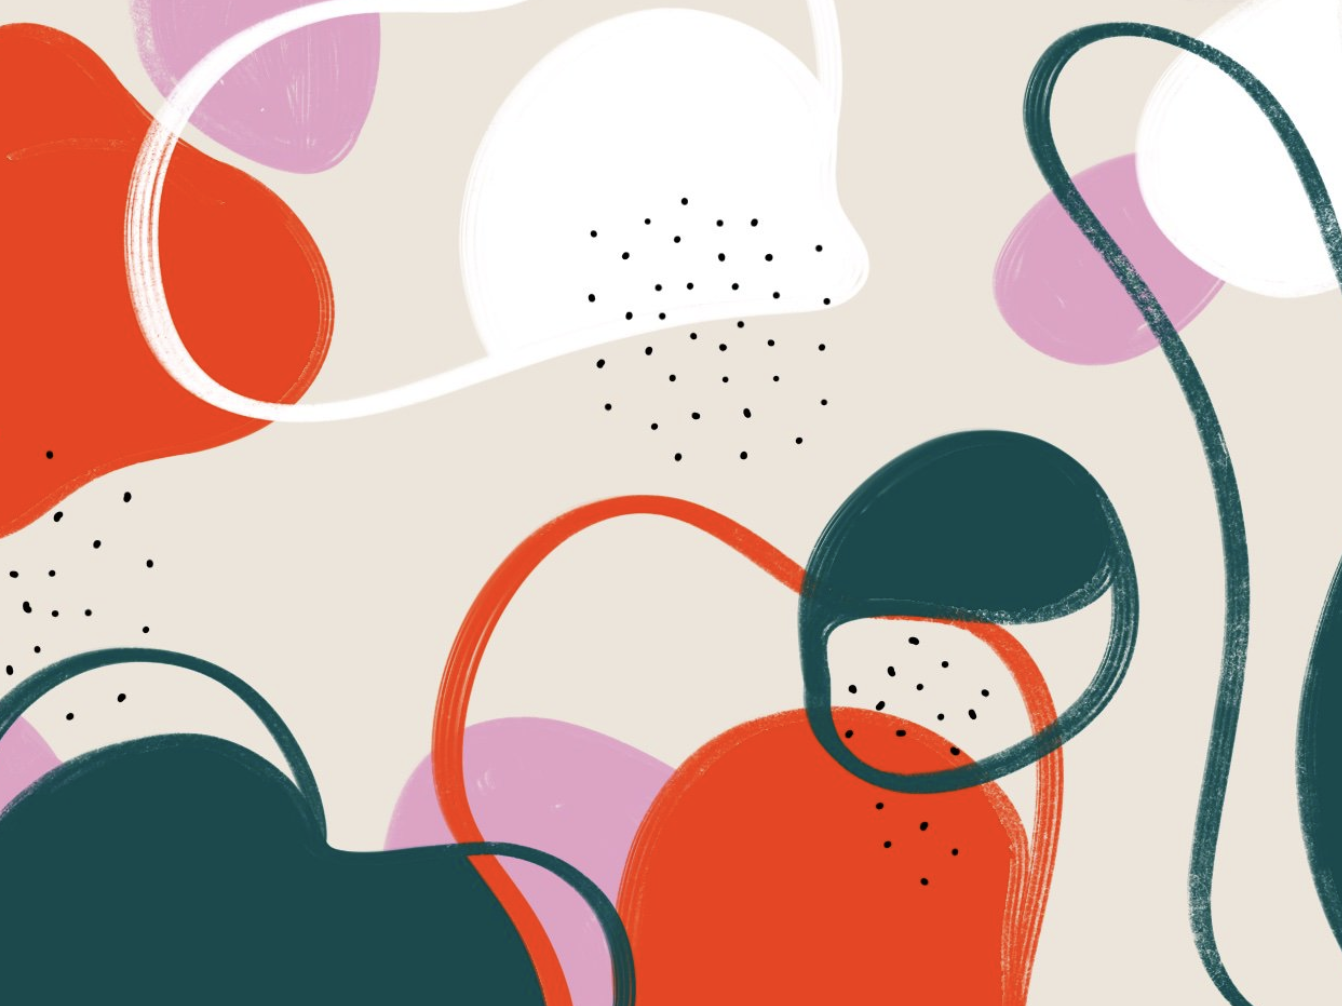 Abstract Shapes By Victoire Douy On Dribbble